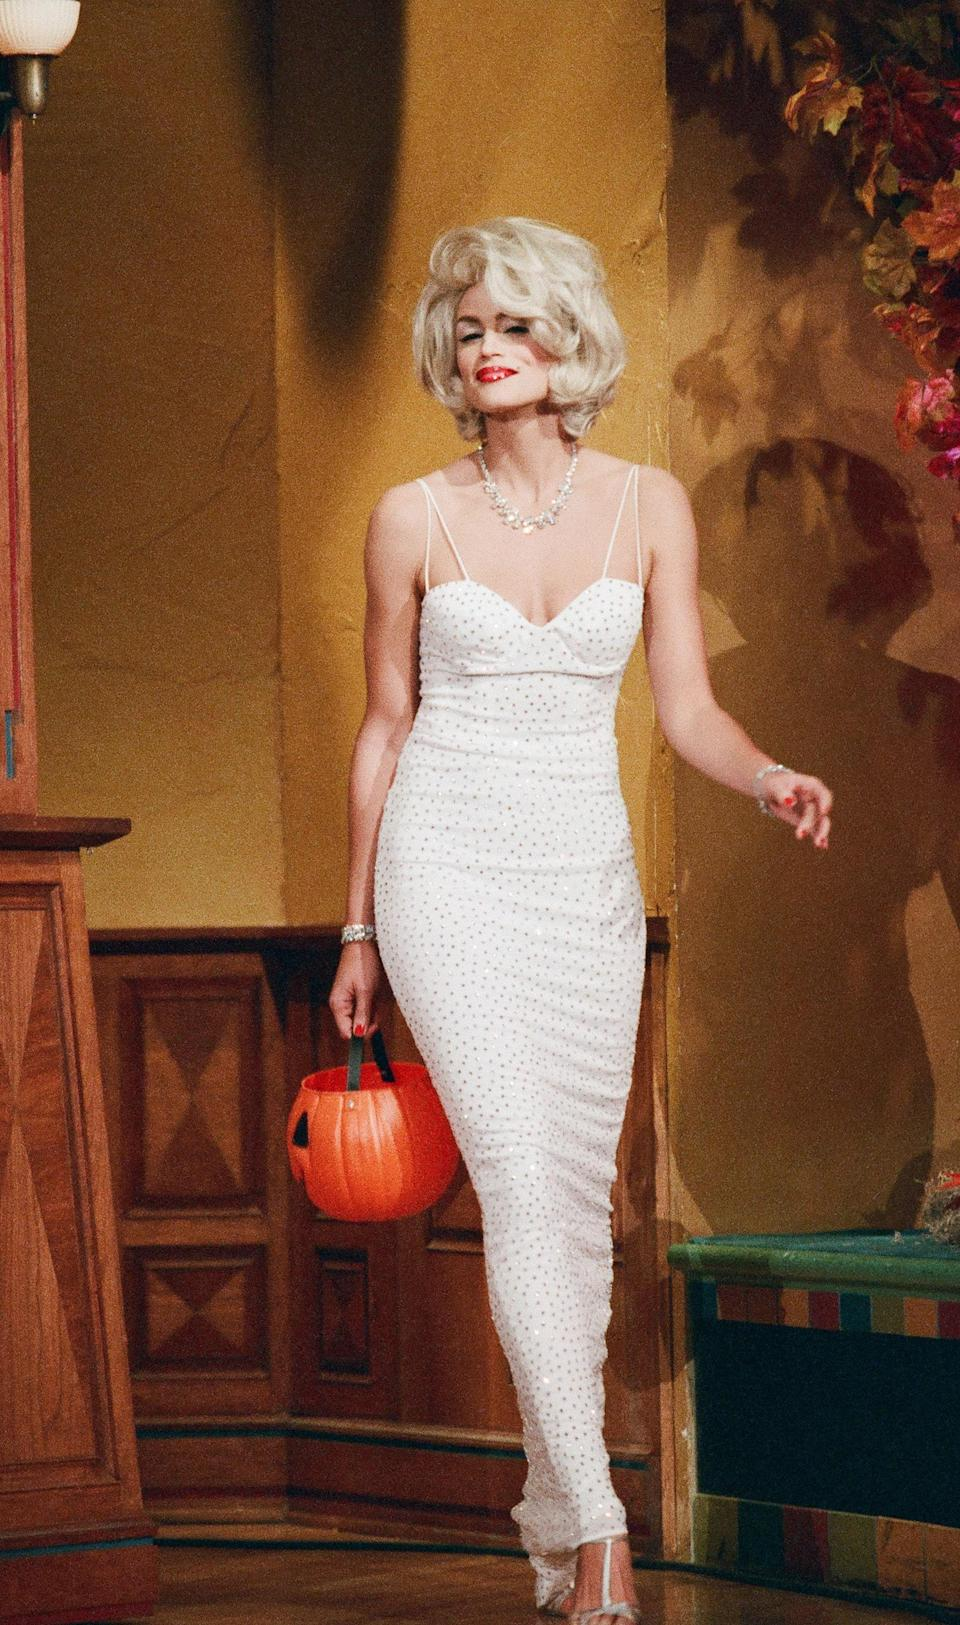 The supermodel was crushing Halloween all the way back in 1996.